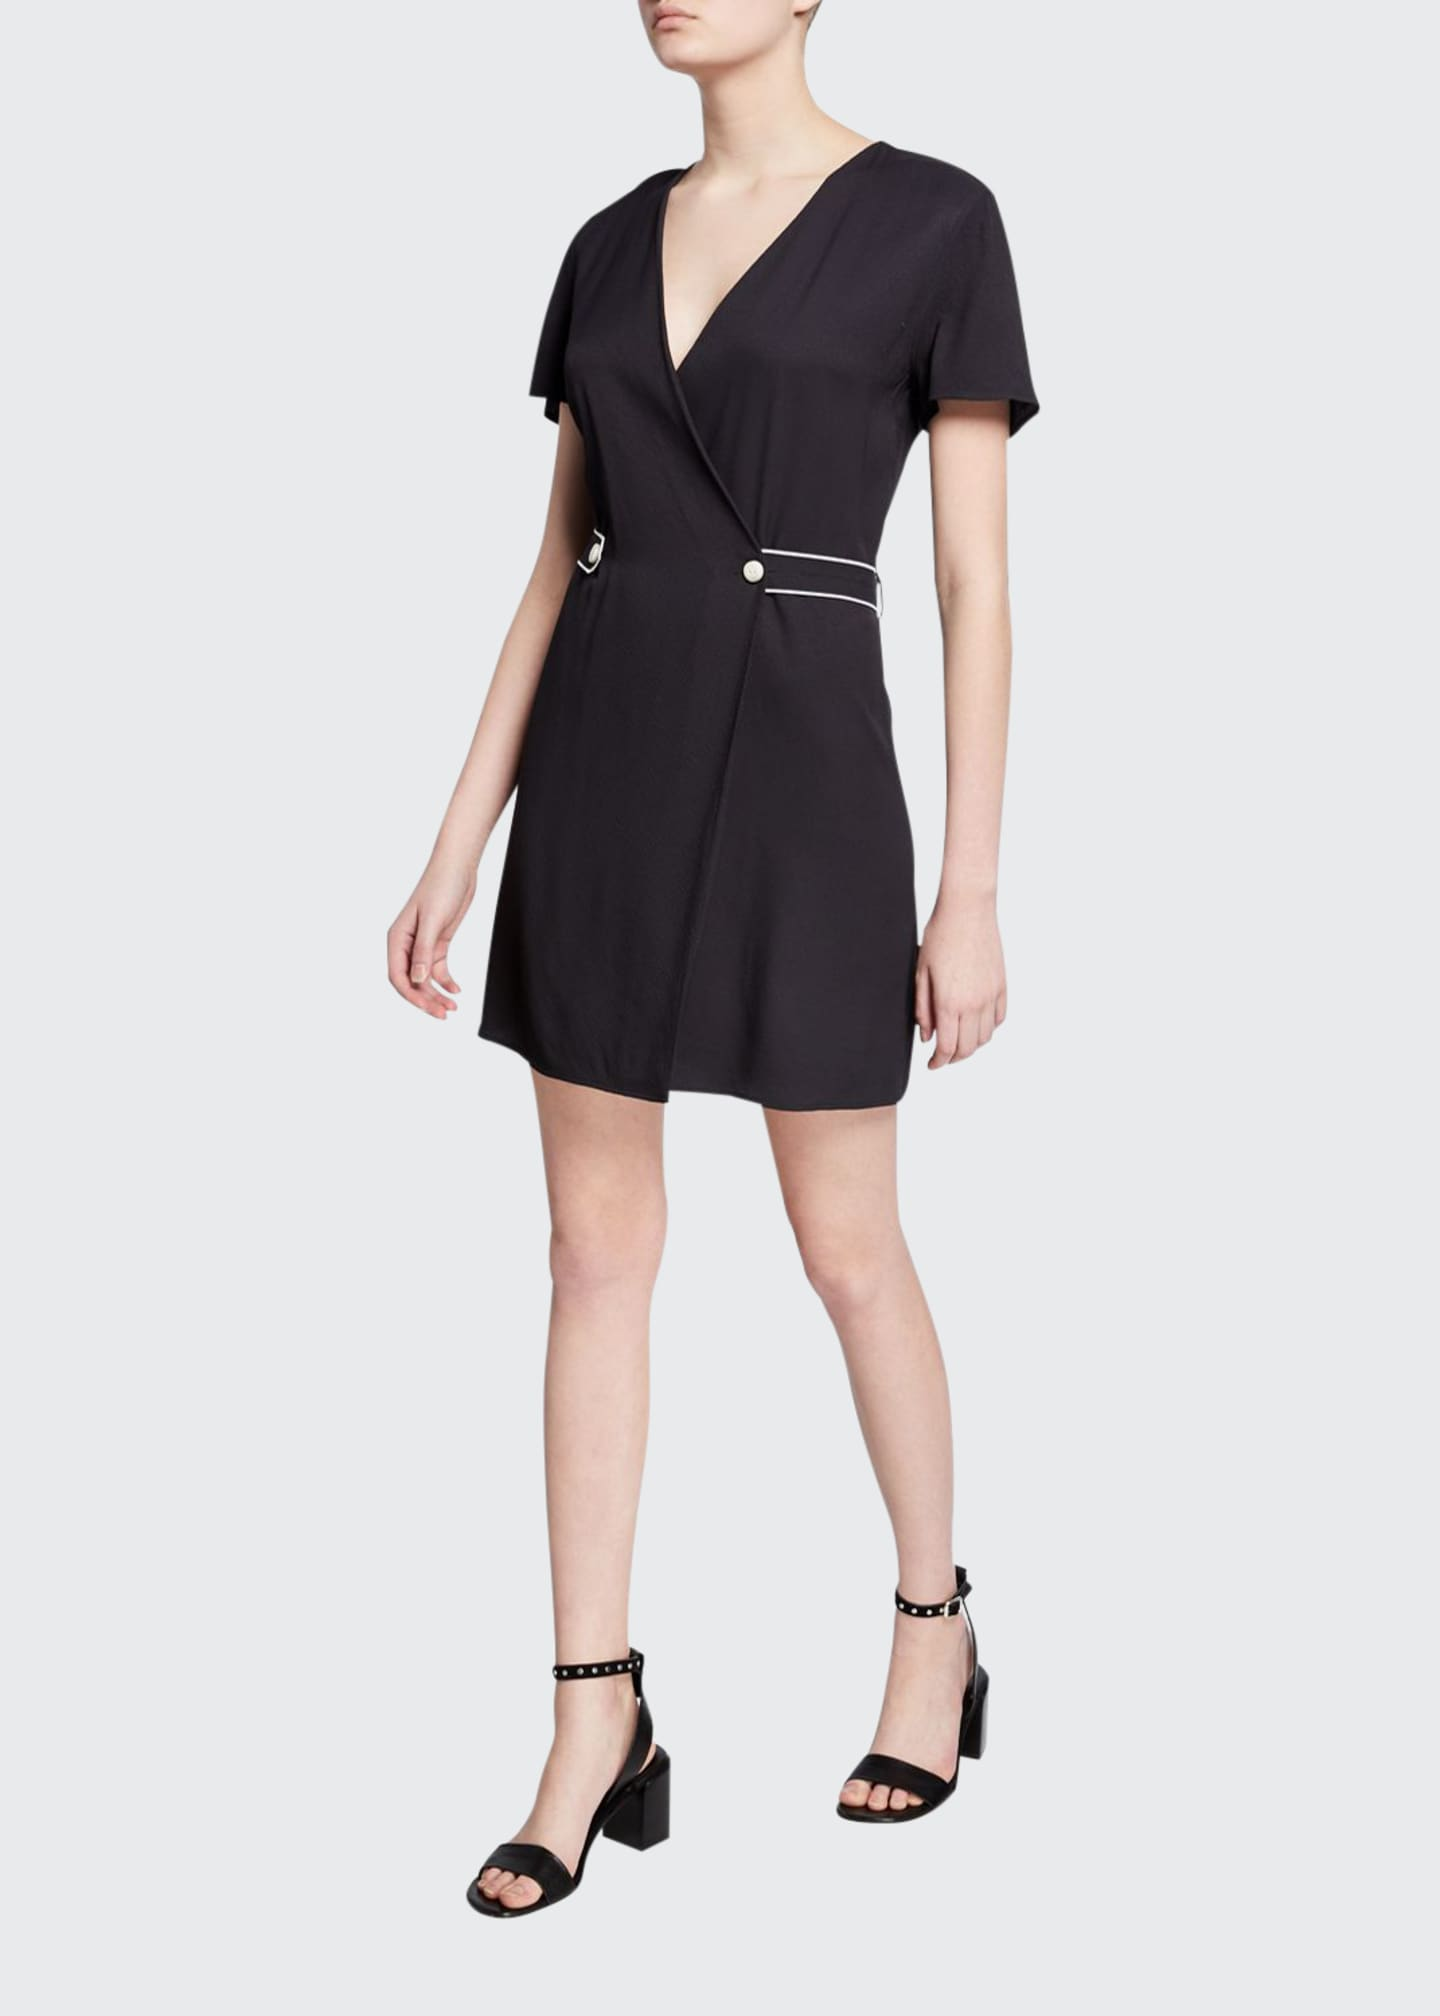 Rag & Bone Tabitha Short-Sleeve Wrap Dress